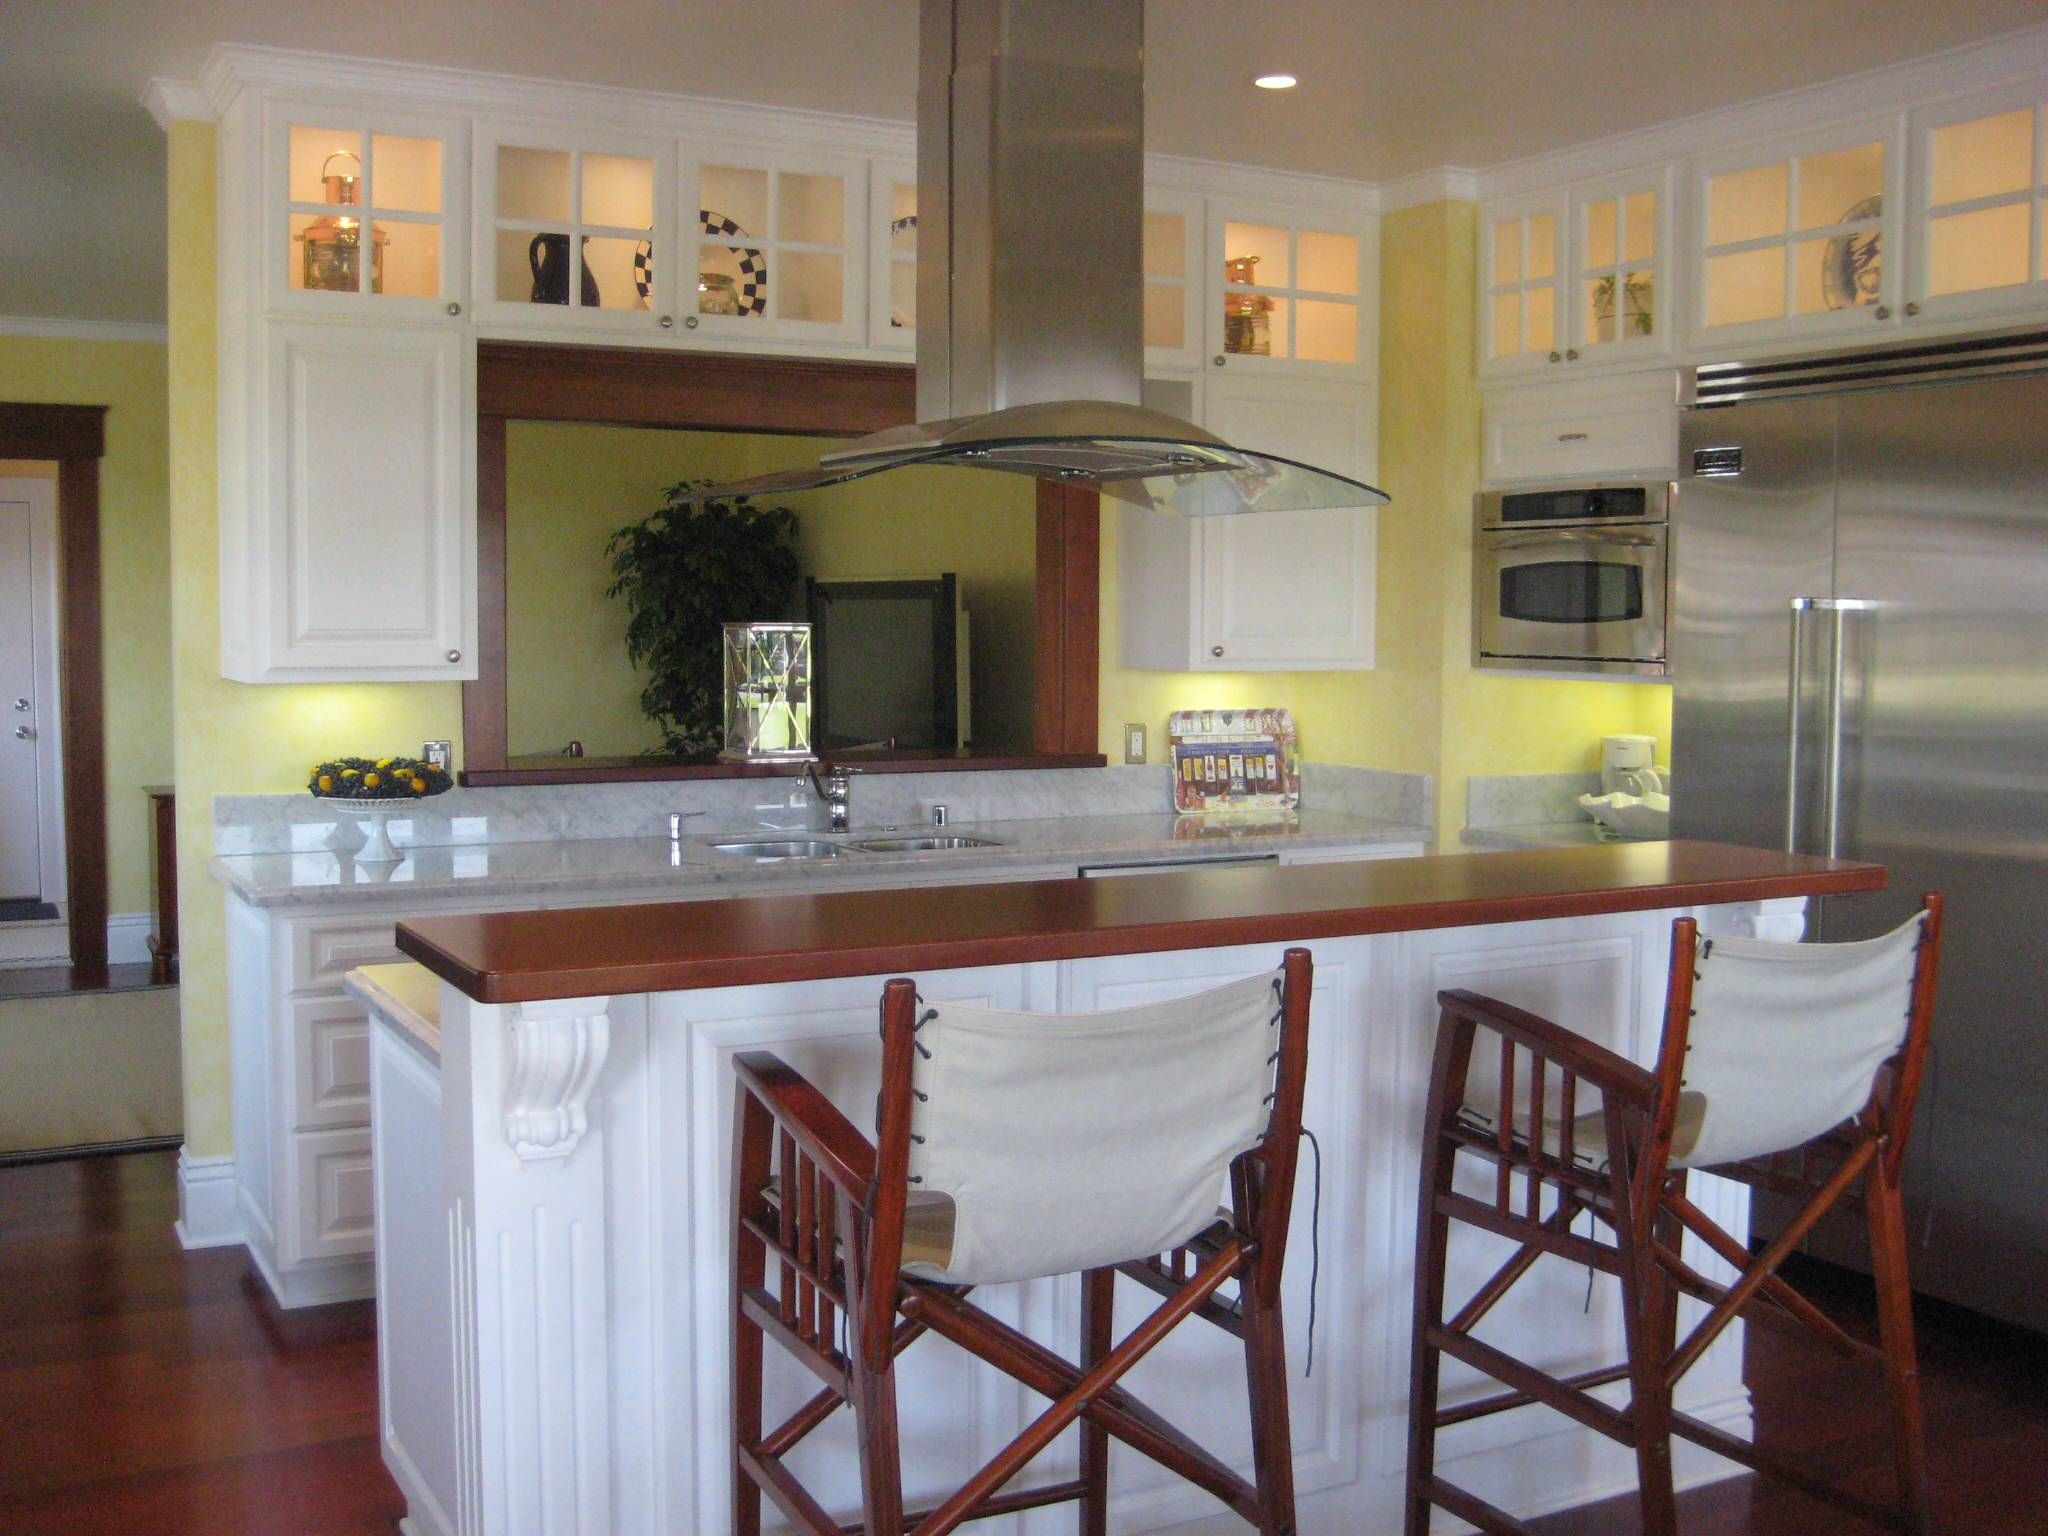 By-The-Sea Kitchen